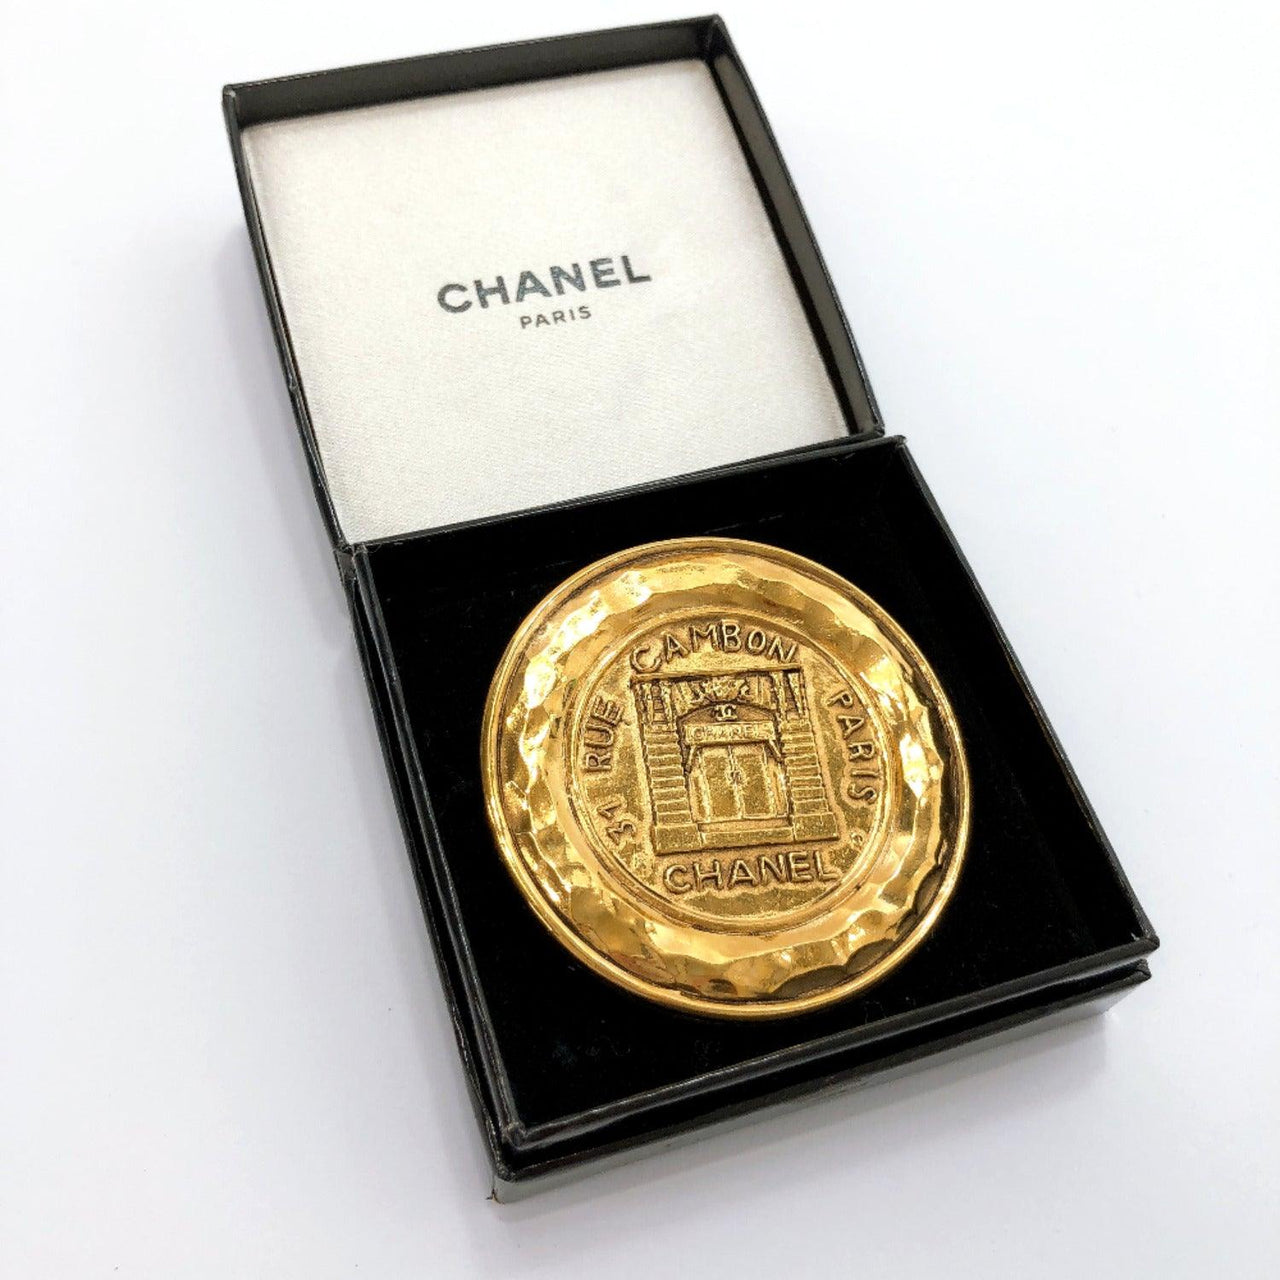 CHANEL Brooch 1150 vintage metal gold Women Used